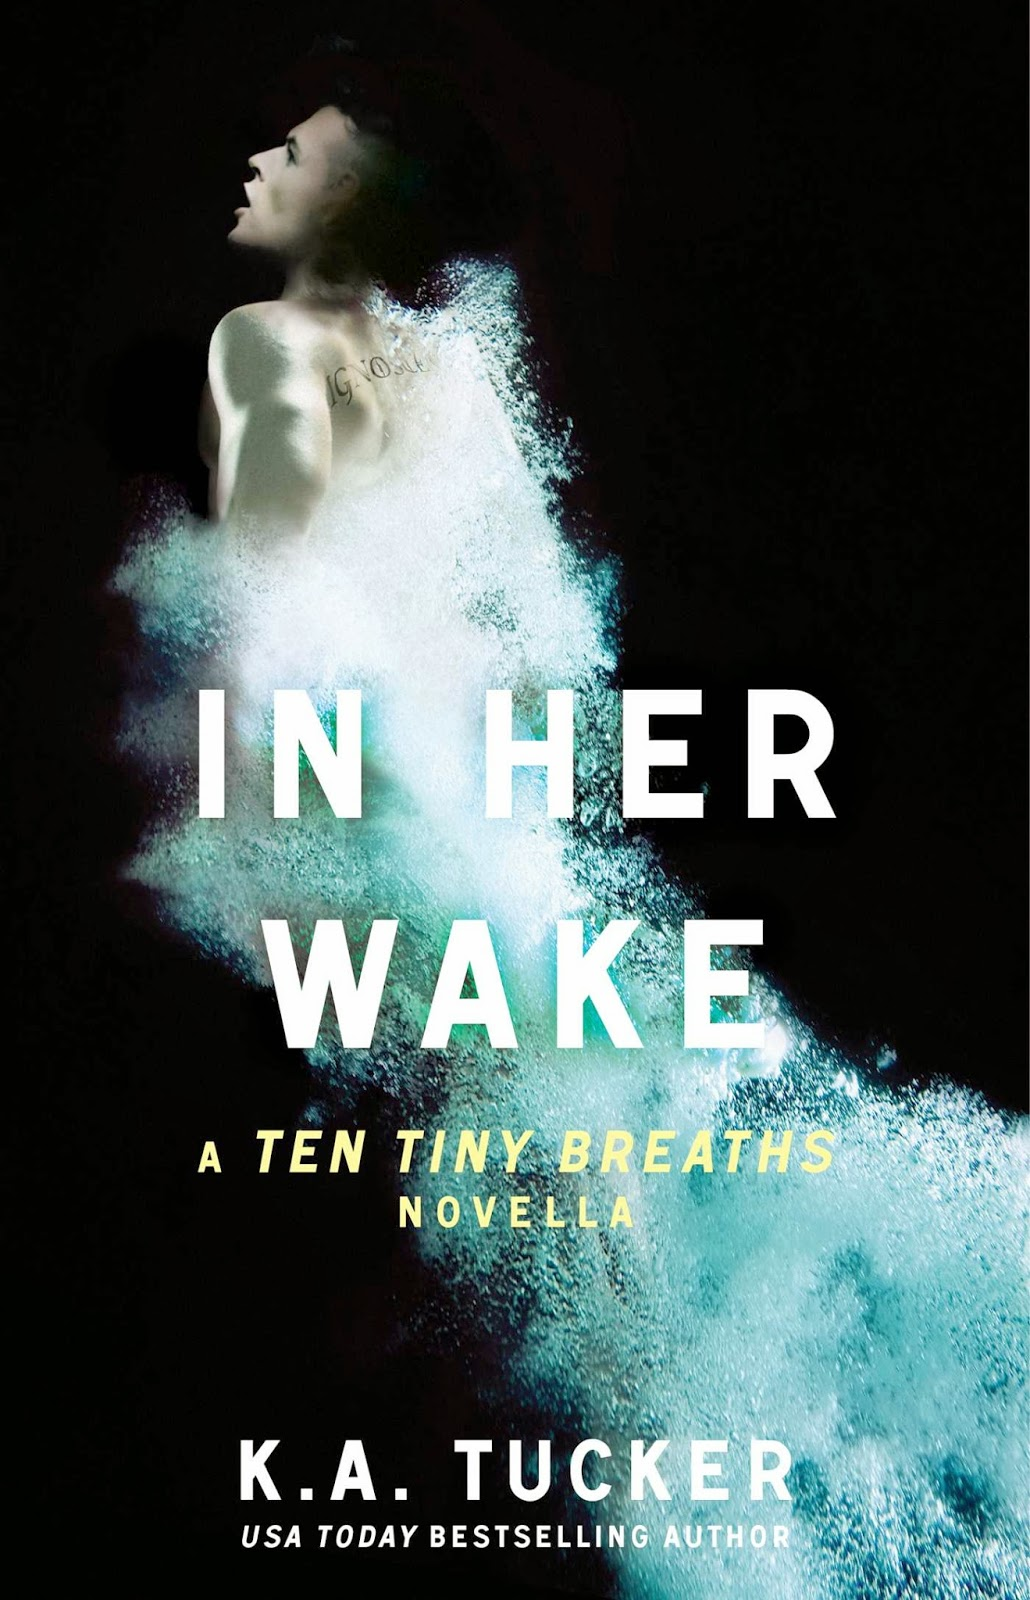 http://www.stuckinbooks.com/2015/02/in-her-wake-by-ka-tucker-feature.html